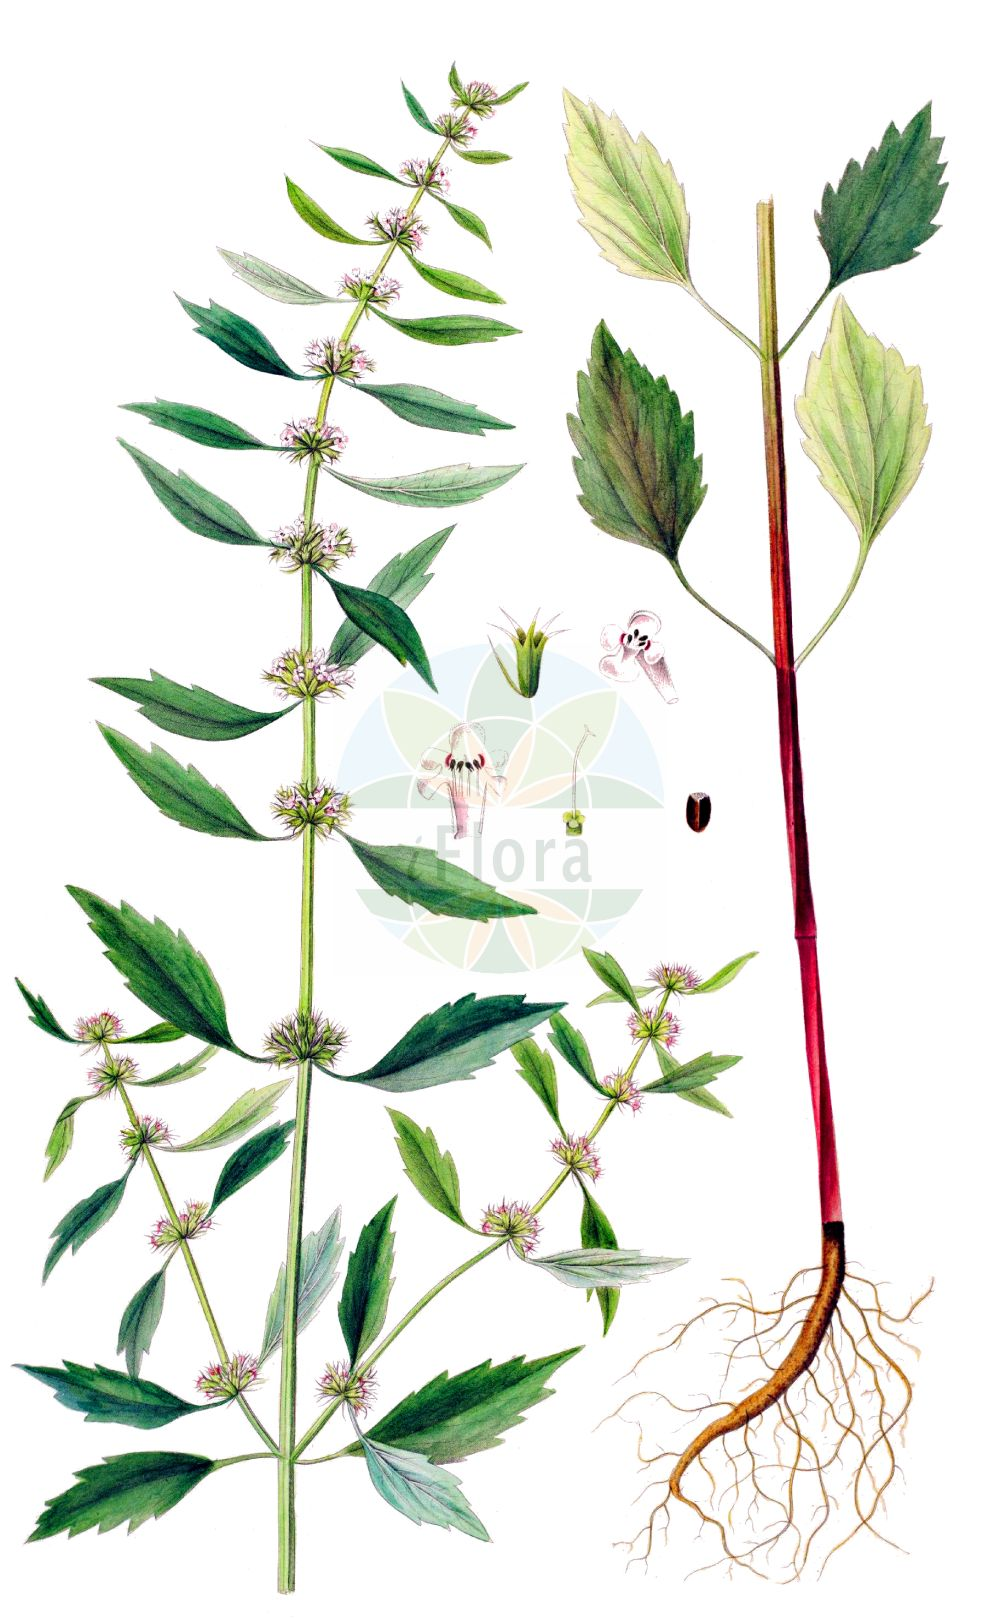 Historische Abbildung von Chaiturus marrubiastrum (Filziges Herzgespann - False Motherwort). Das Bild zeigt Blatt, Bluete, Frucht und Same. ---- Historical Drawing of Chaiturus marrubiastrum (Filziges Herzgespann - False Motherwort).The image is showing leaf, flower, fruit and seed.(Chaiturus marrubiastrum,Filziges Herzgespann,False Motherwort,Cardiaca marrubiastrum,Chaiturus leonuroides,Chaiturus marrubiastrum,Chaiturus marrubifolius,Leonurus marrubiastrum,Leonurus marrubifolius,Leonurus parviflorus,Filziges Herzgespann,Andorn-Loewenschwanz,Falscher Andorn,Katzenschwanz,False Motherwort,Lion's Tail,Horehound Motherwort,Chaiturus,Lamiaceae,Lippenbluetengewaechse,Lippenbluetler,Nettle family,Blatt,Bluete,Frucht,Same,leaf,flower,fruit,seed,Oeder (1761-1883))